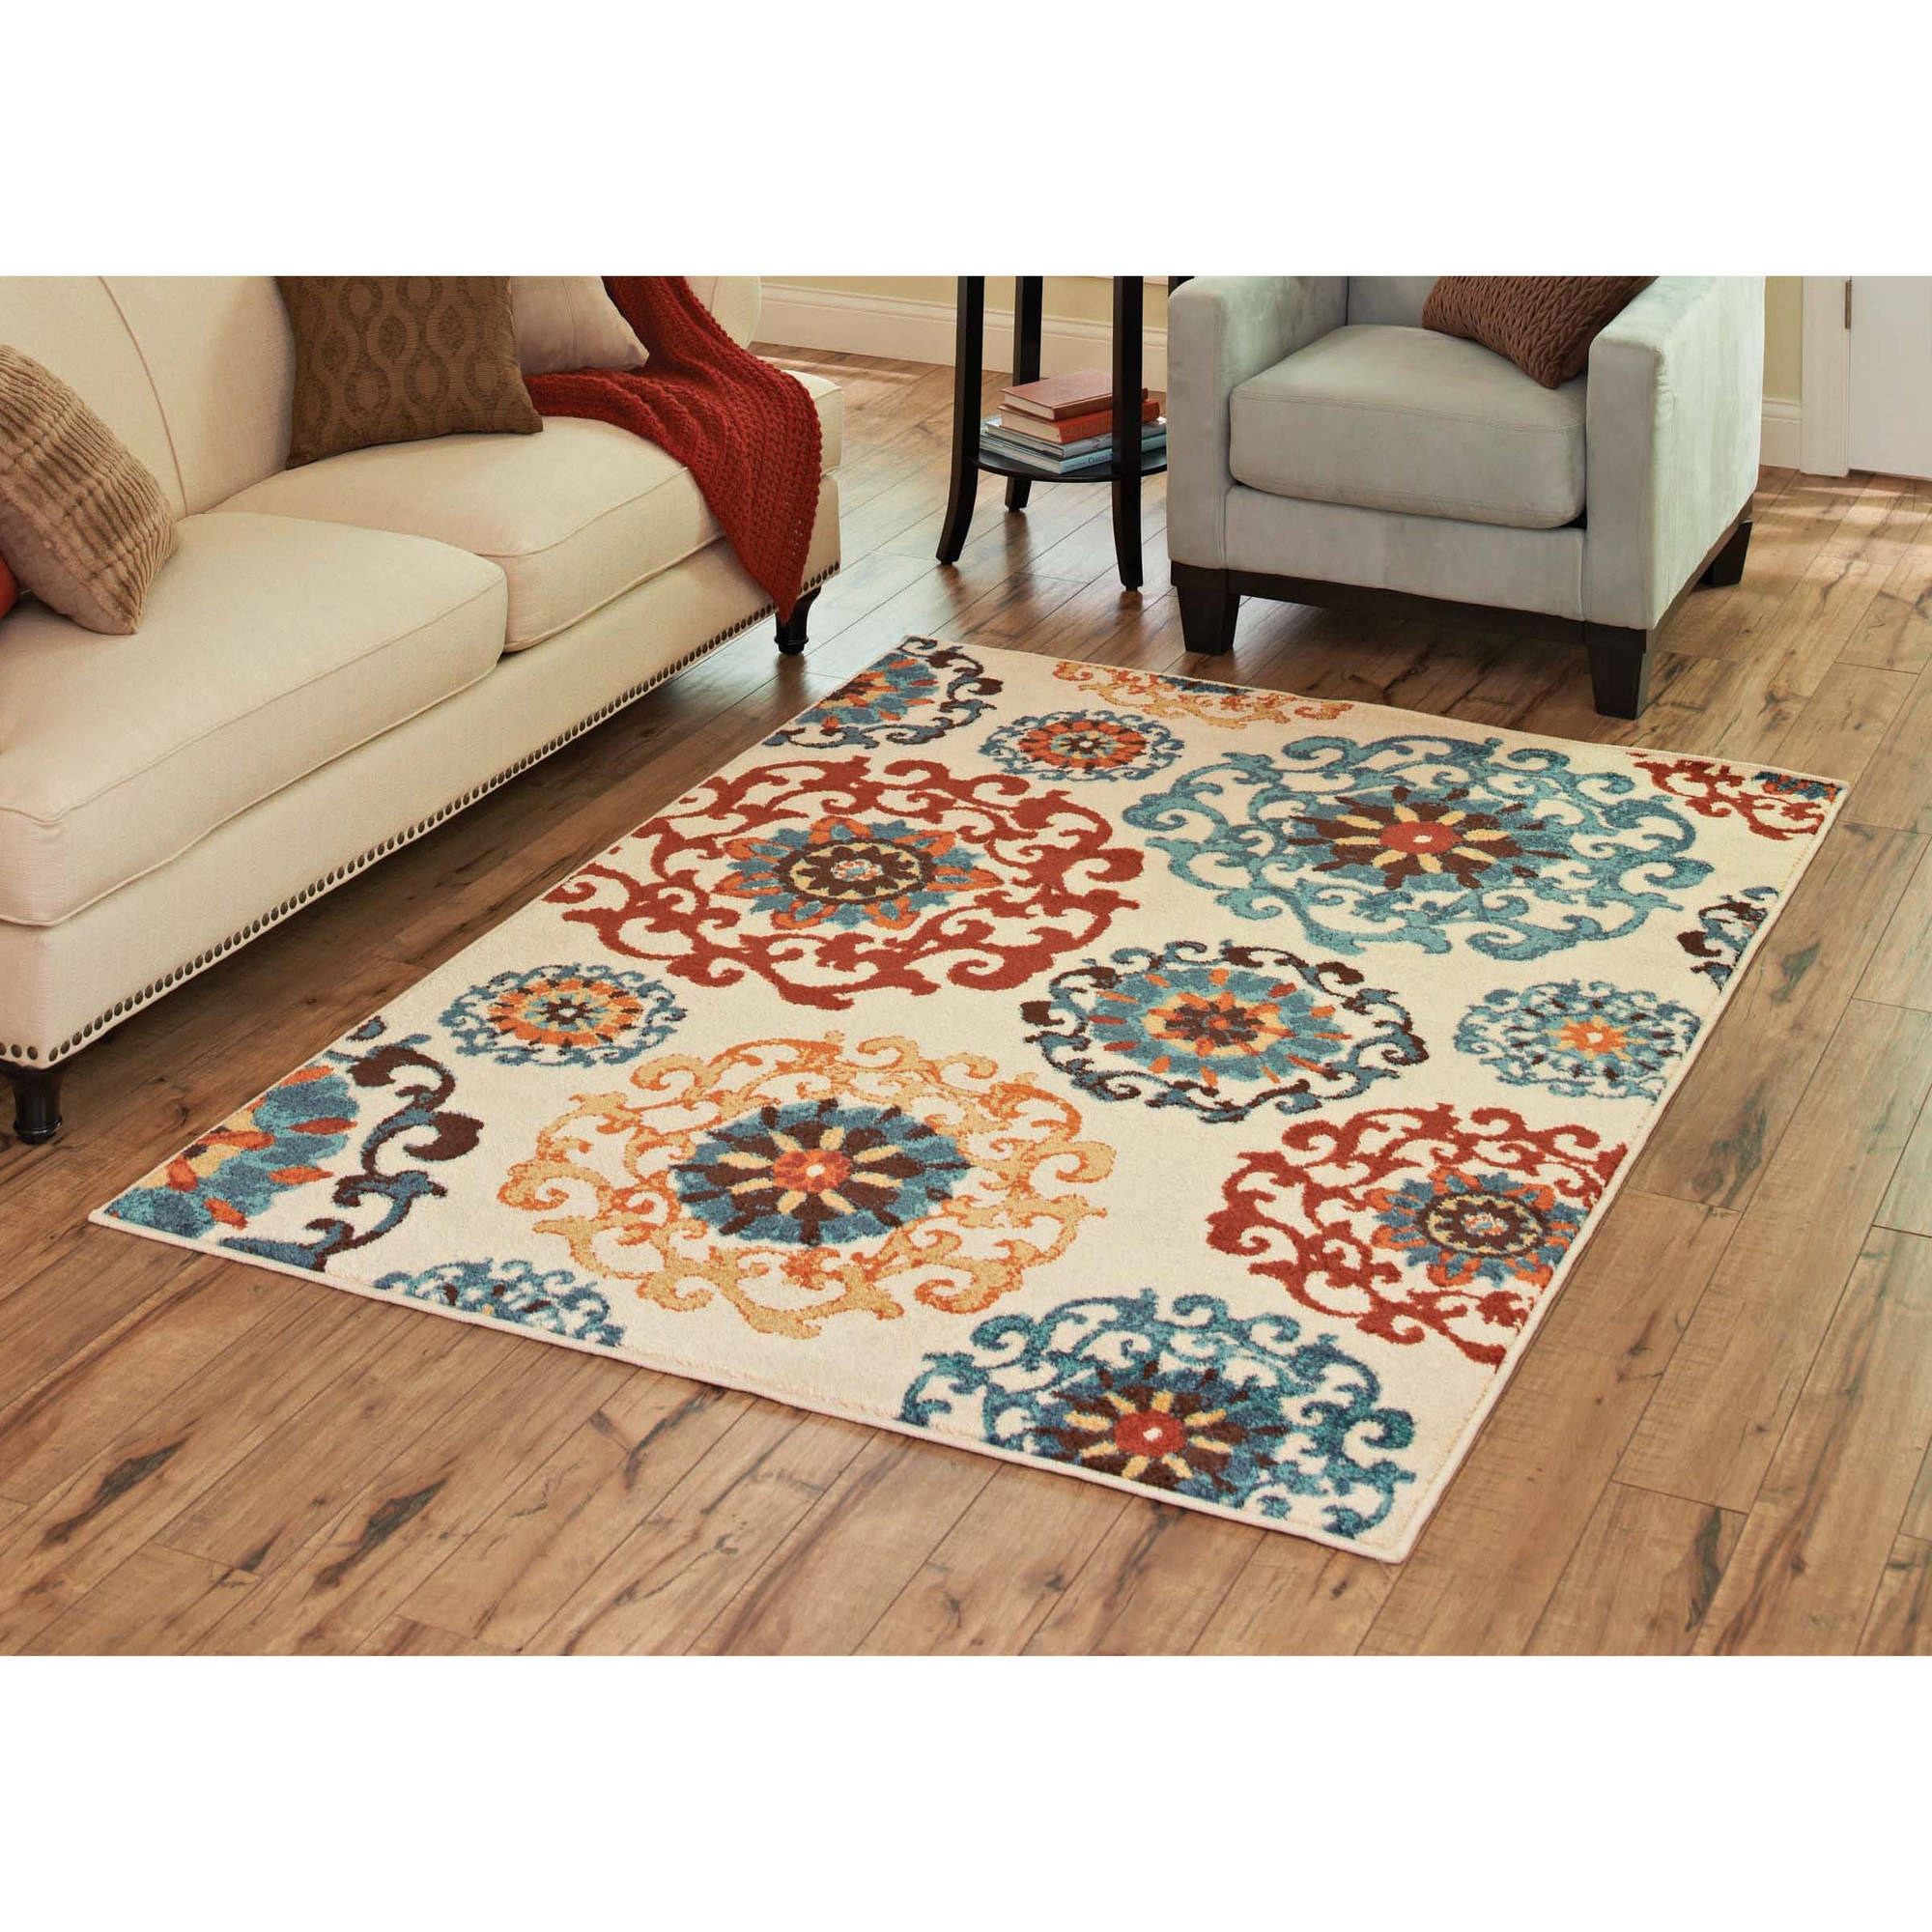 better homes and gardens suzani area rug or runner KZQOJST